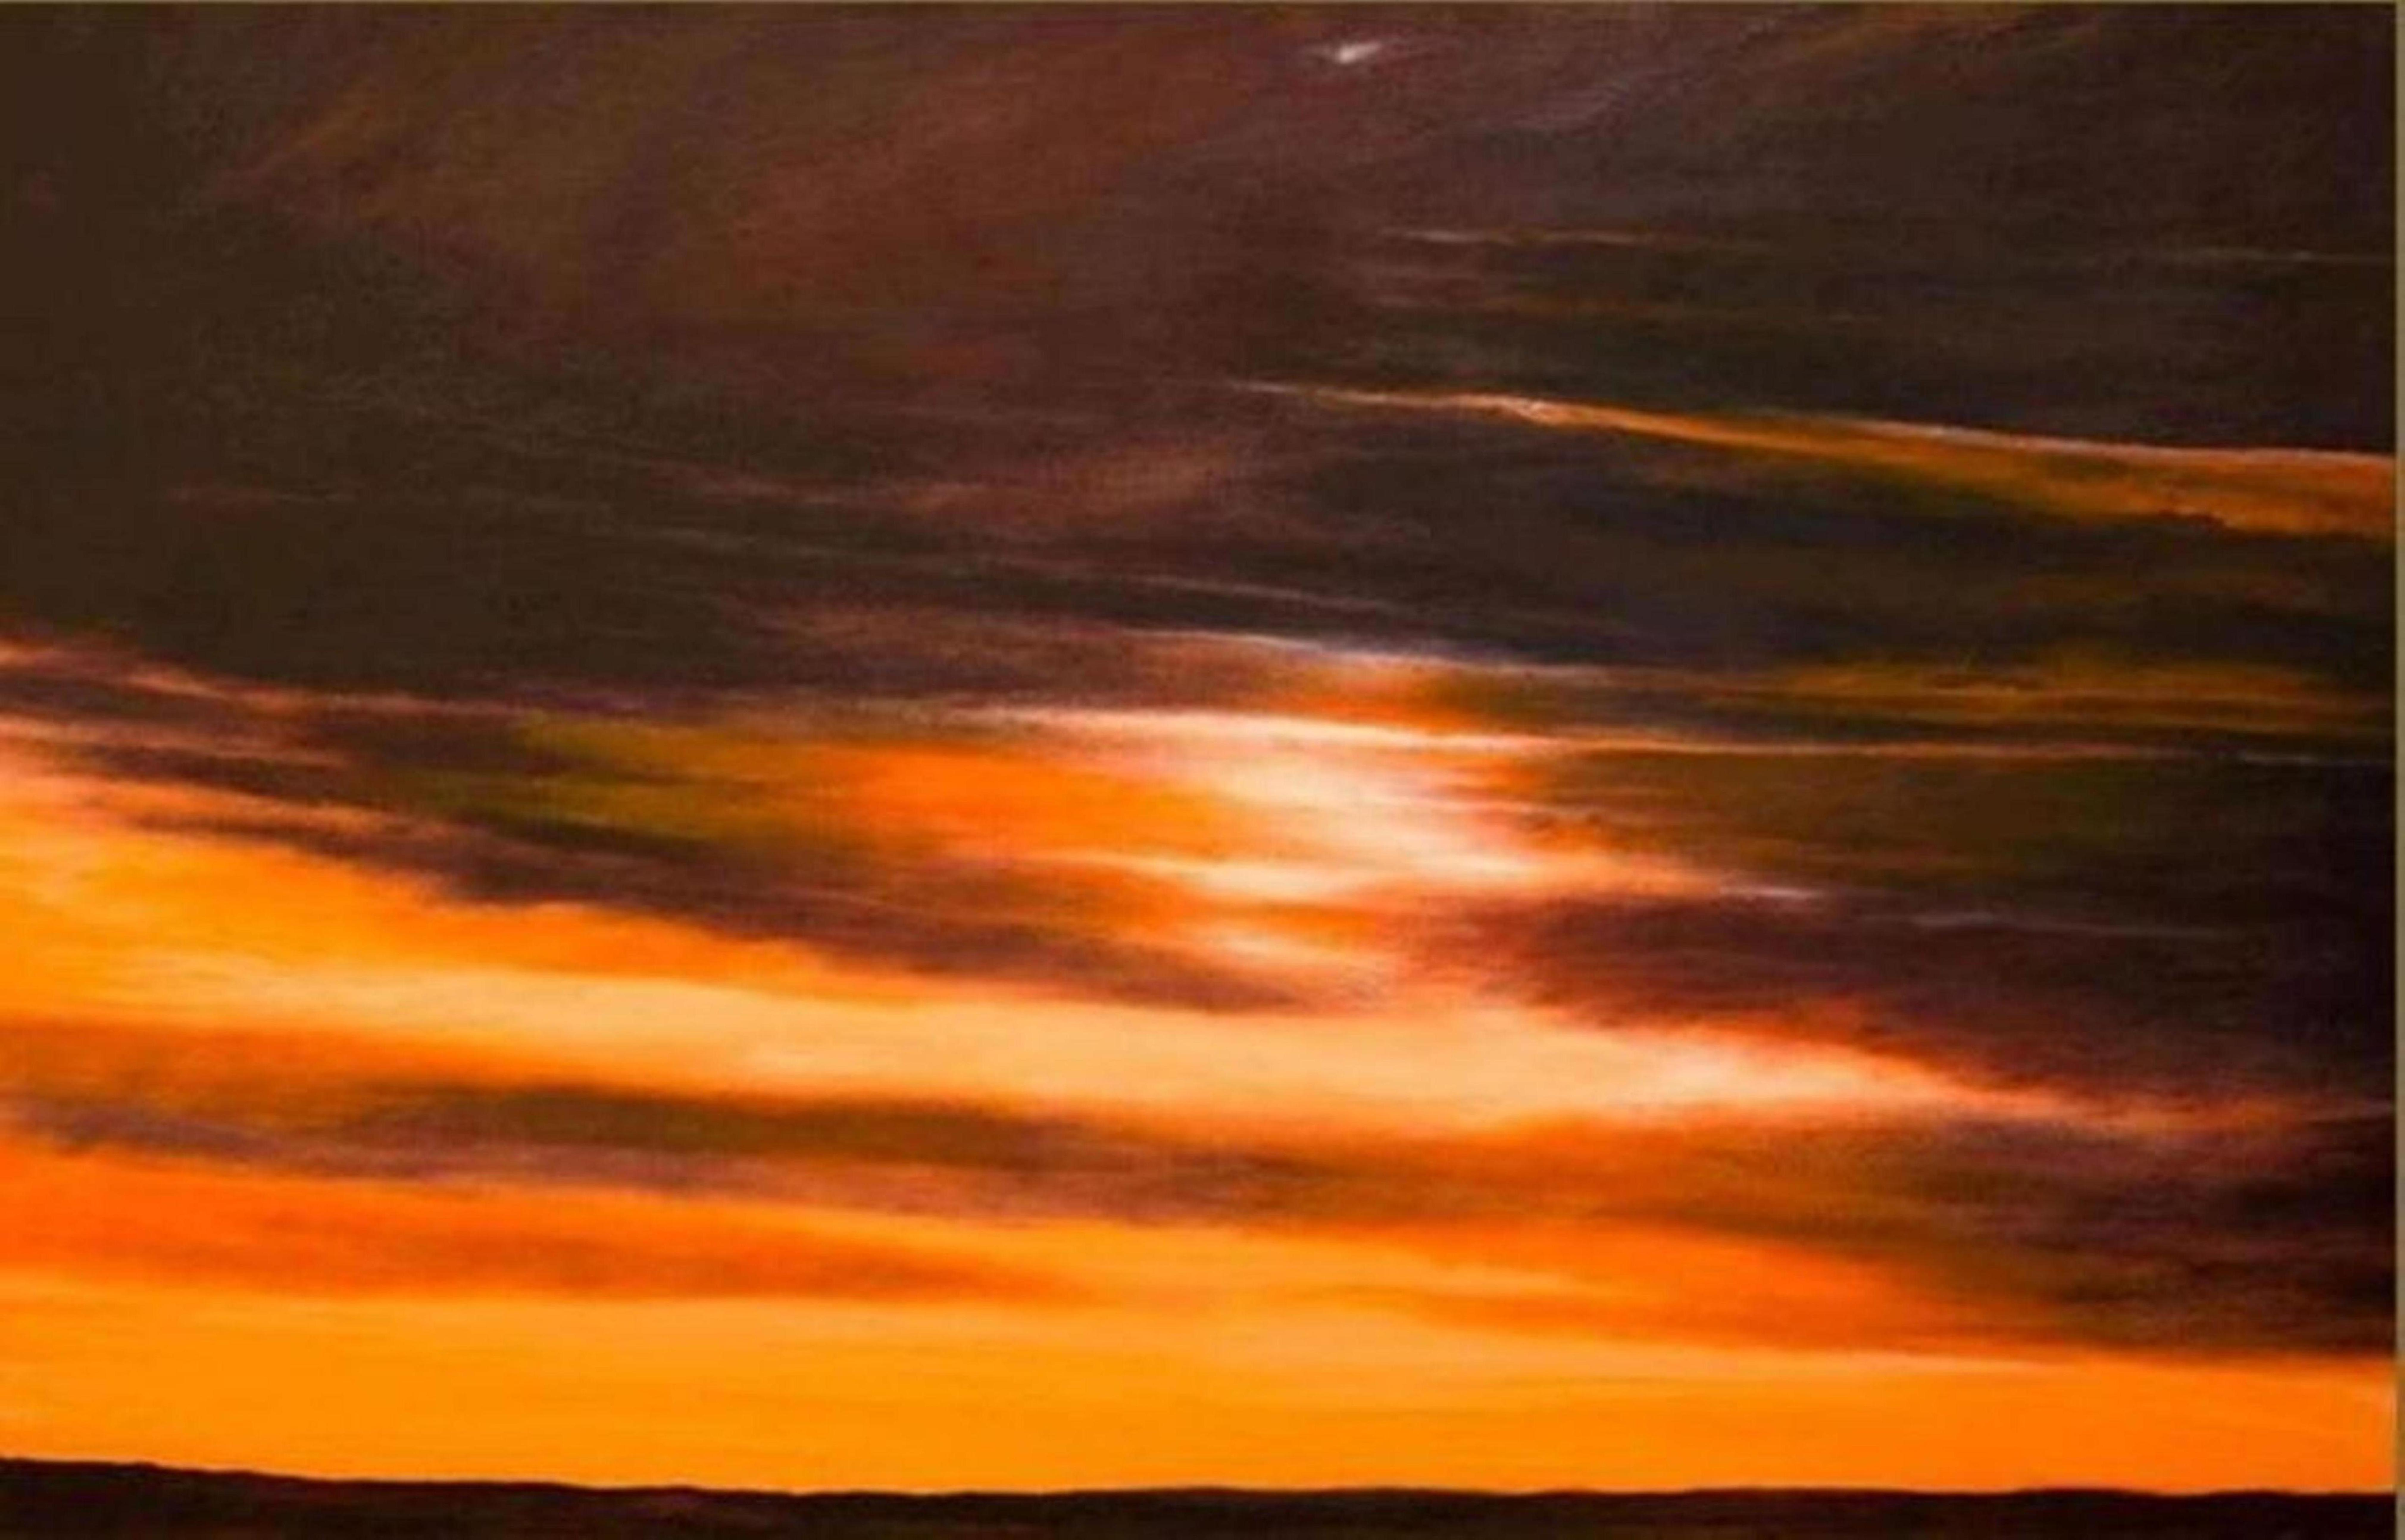 The Power of Light artwork by Cecilia Flaten - art listed for sale on Artplode